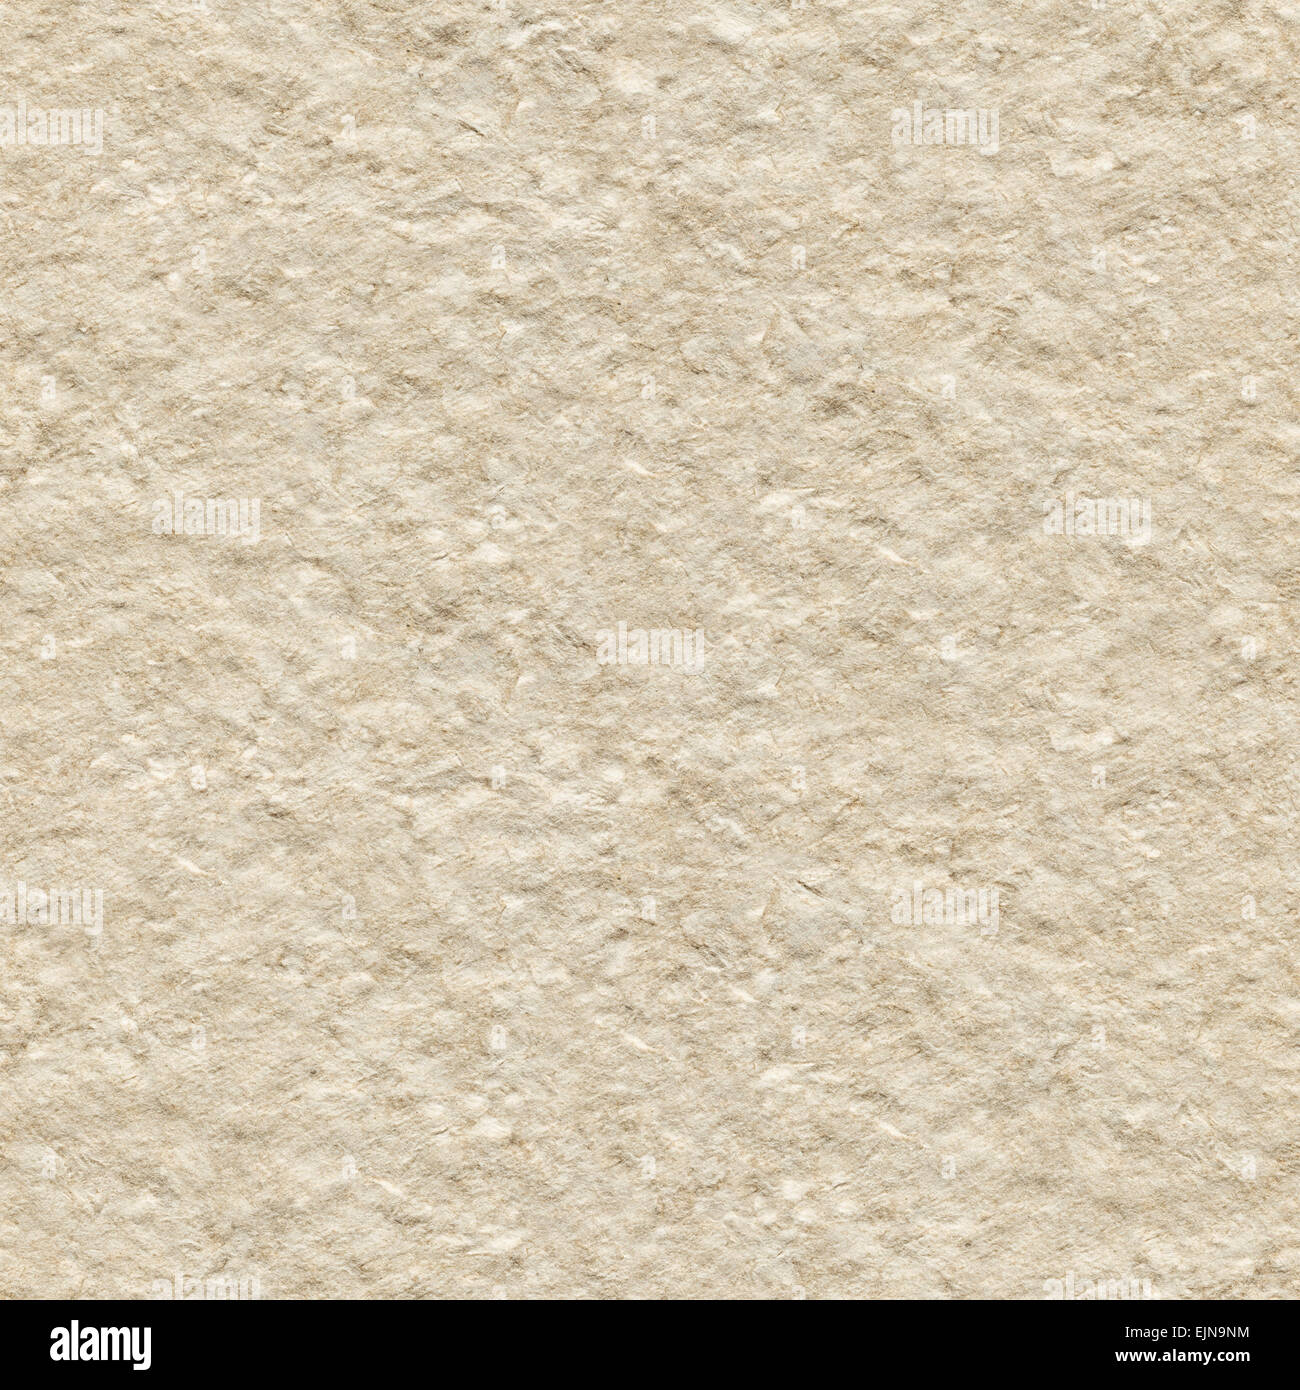 Seamless paper texture, rough recycled cardboard background - Stock Image